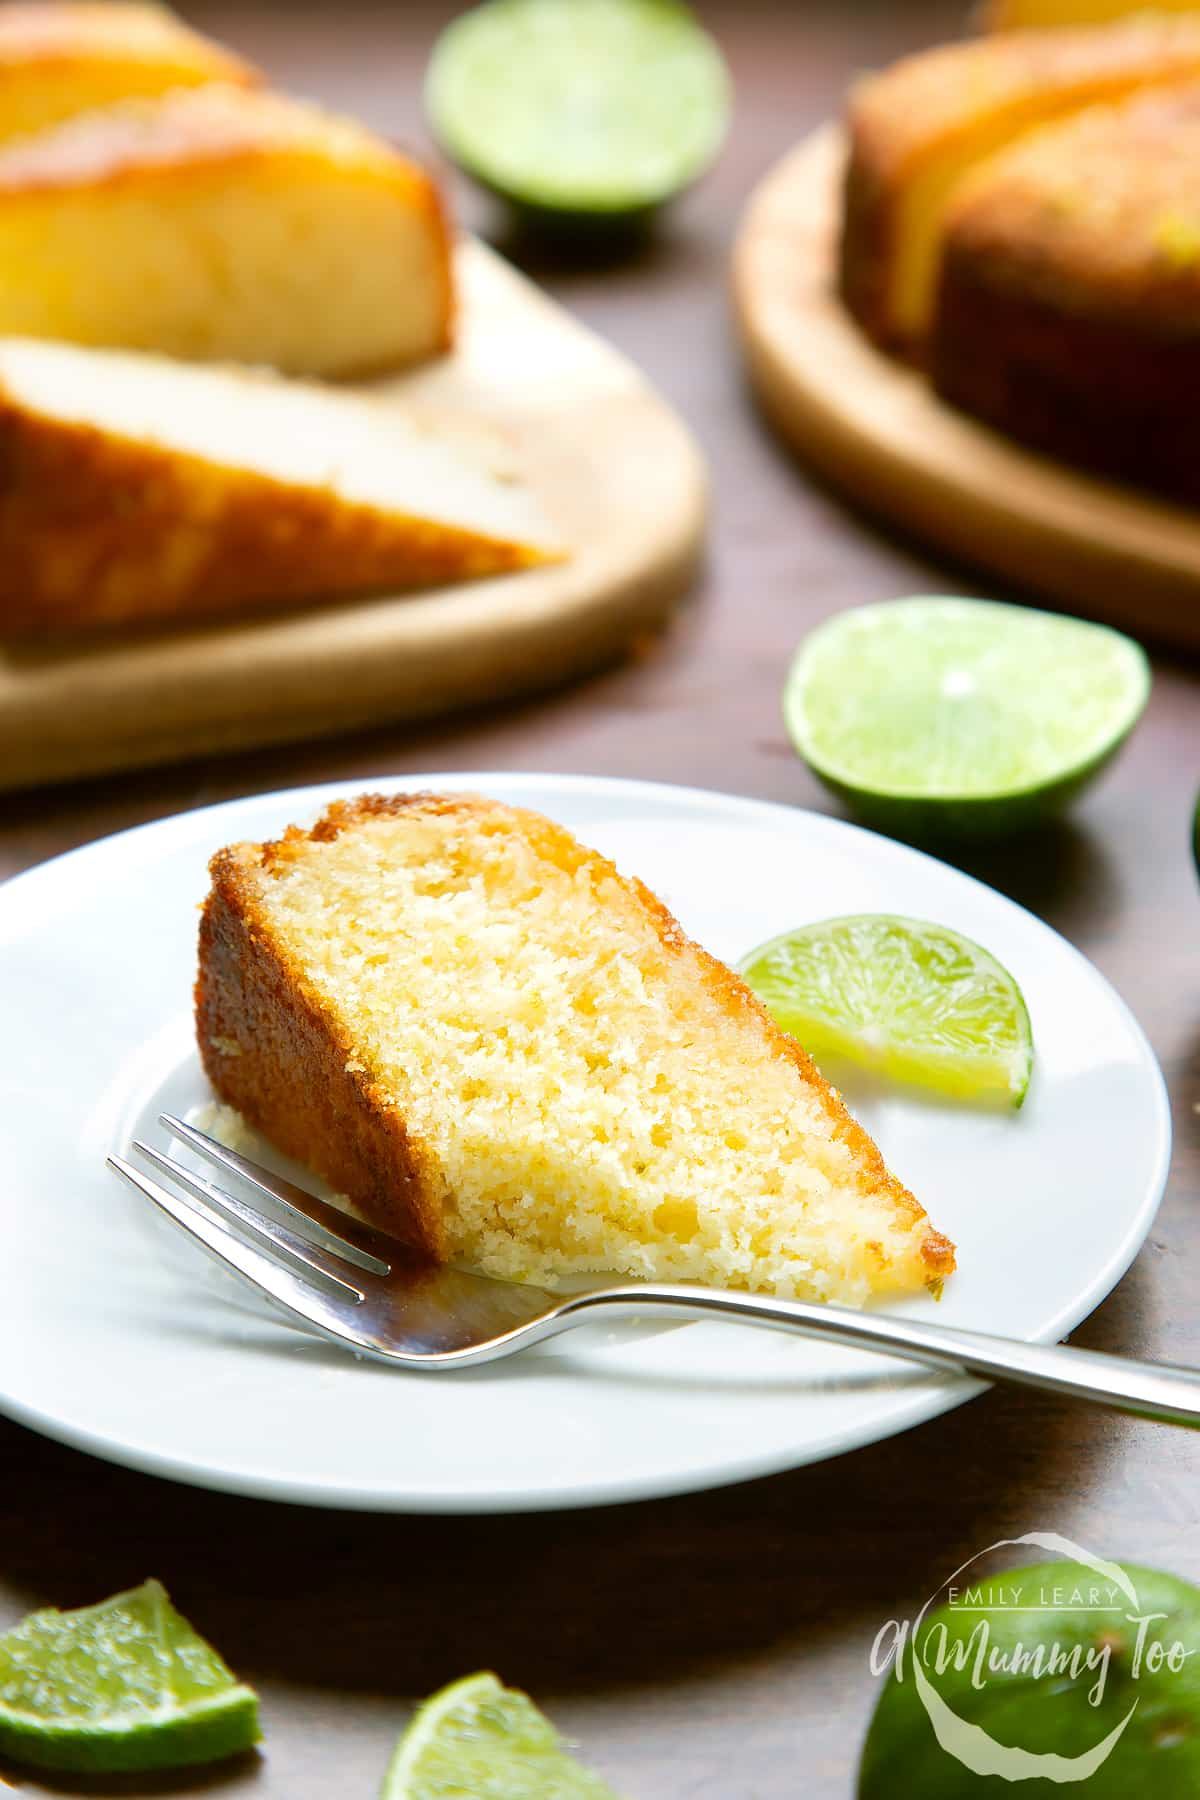 Slice of lime drizzle cake laying on a white plate with a fork. A piece has been eaten.